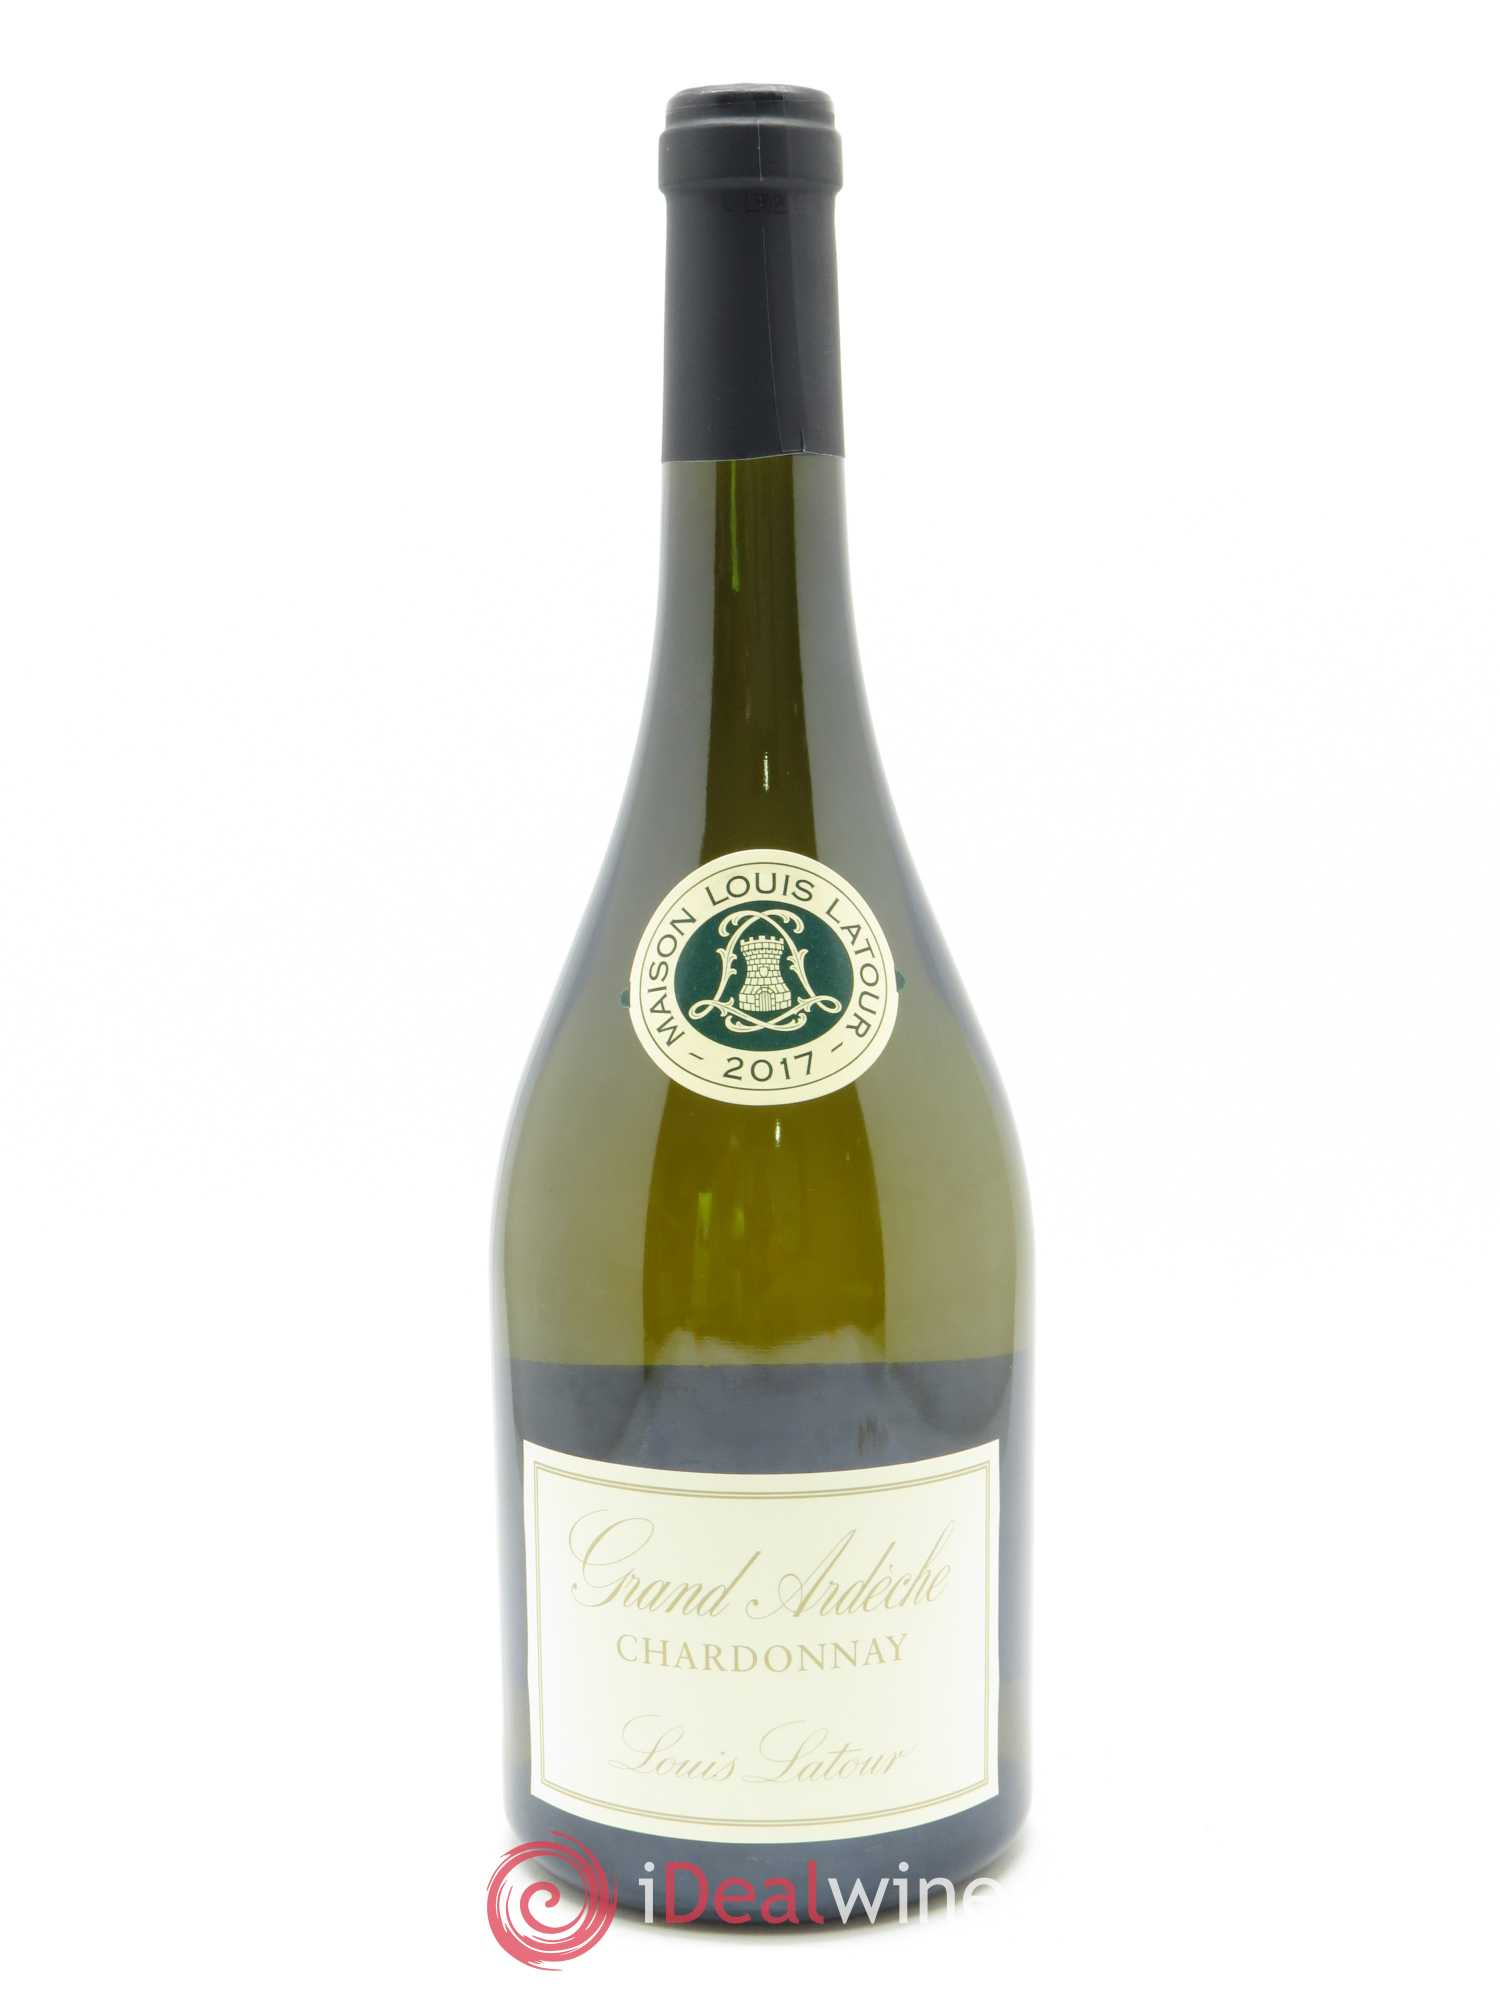 IGP Ardèche Grand Ardèche Chardonnay Louis Latour  2017 - Lot of 1 Bottle